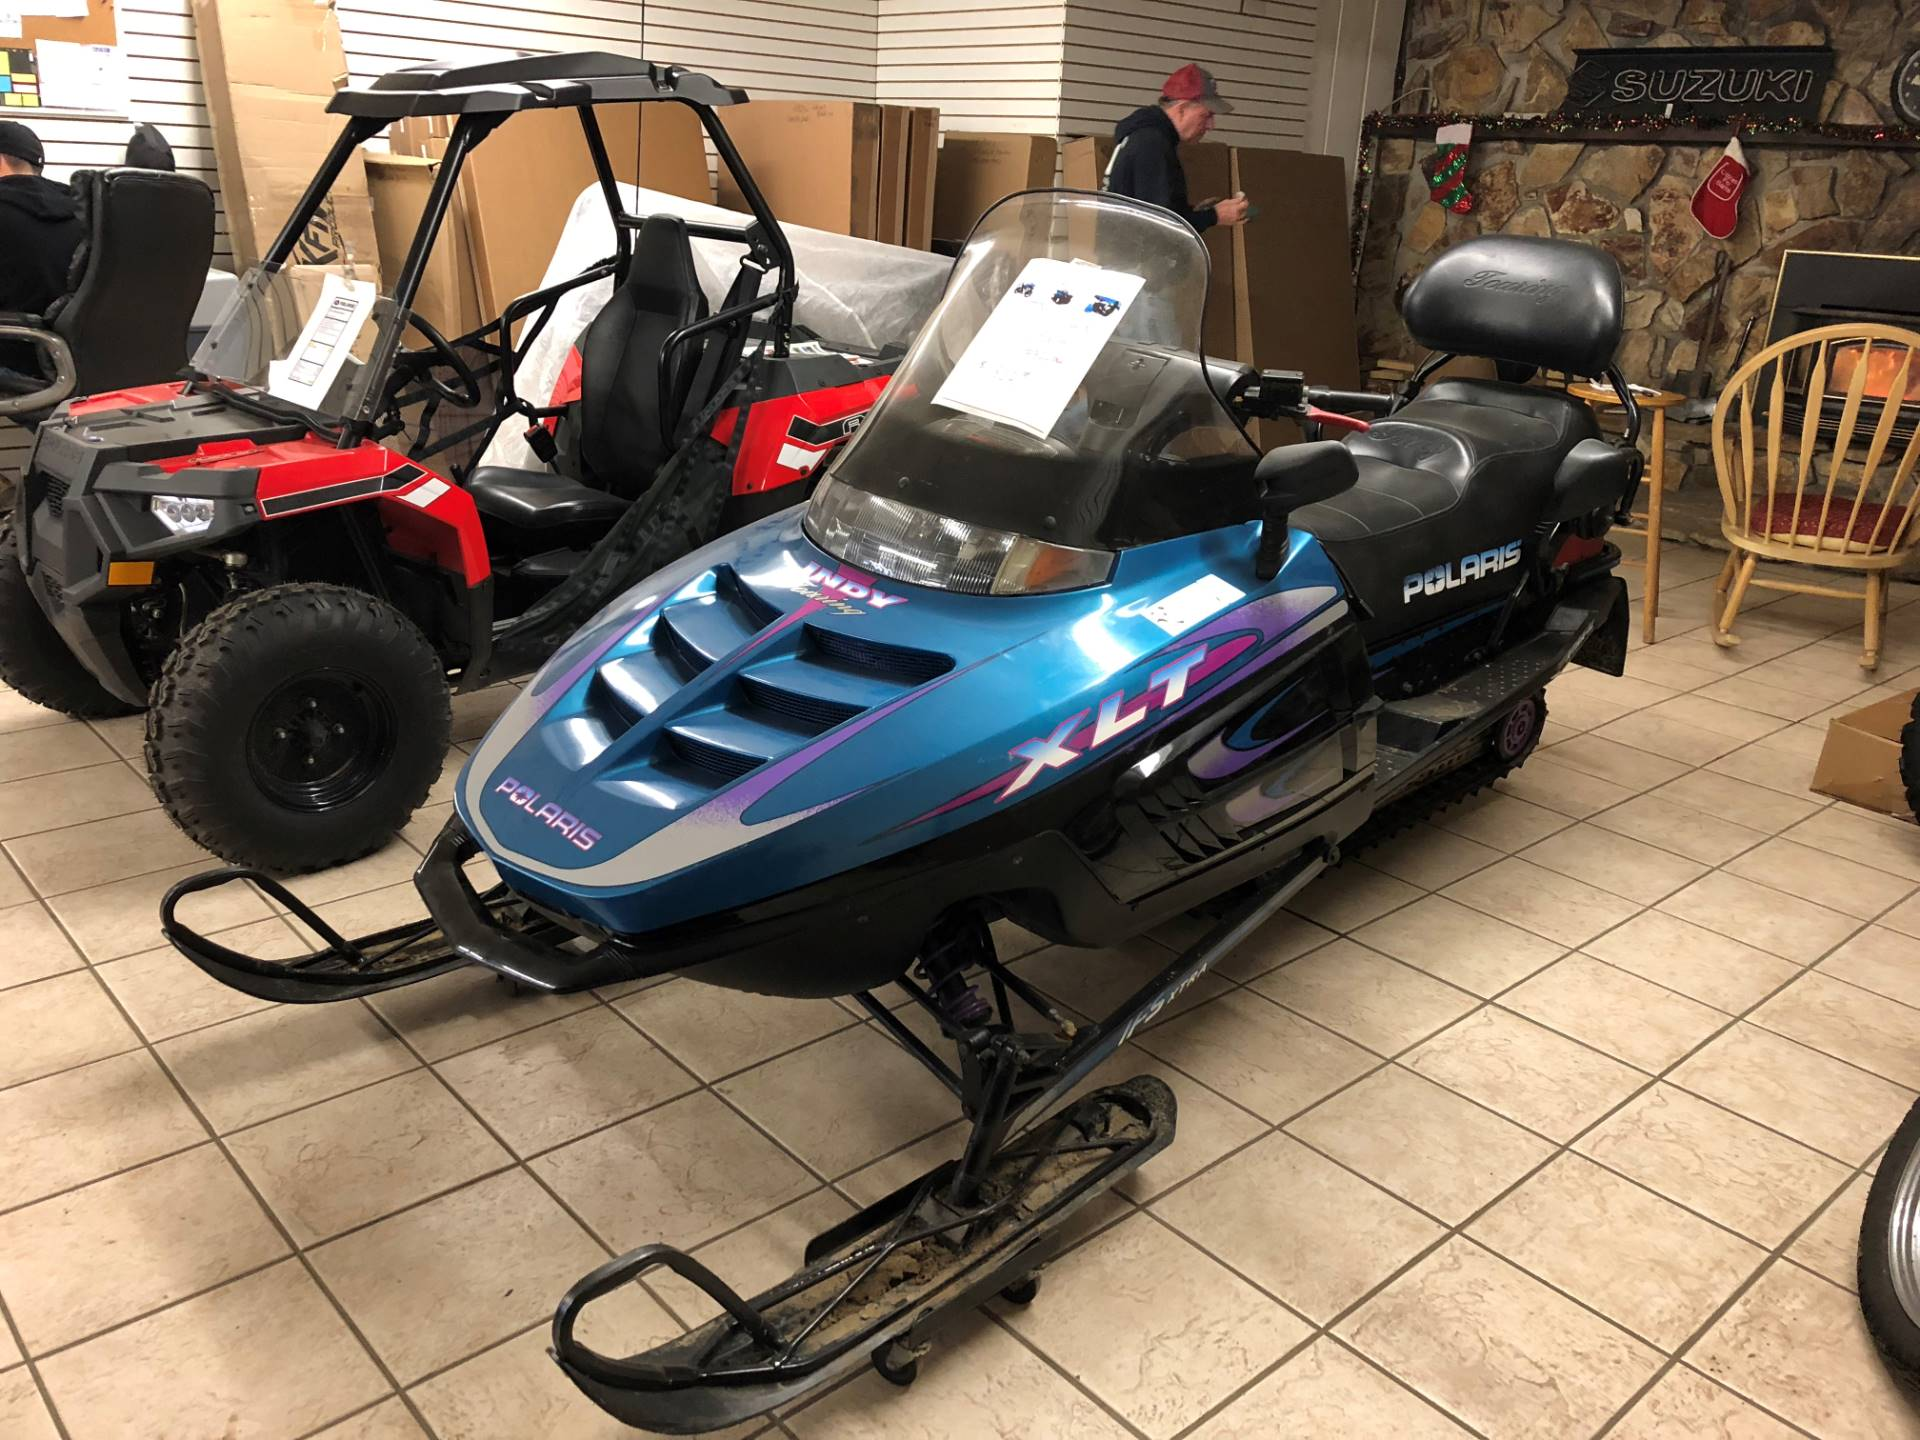 1997 Polaris indy 580cc in Olean, New York